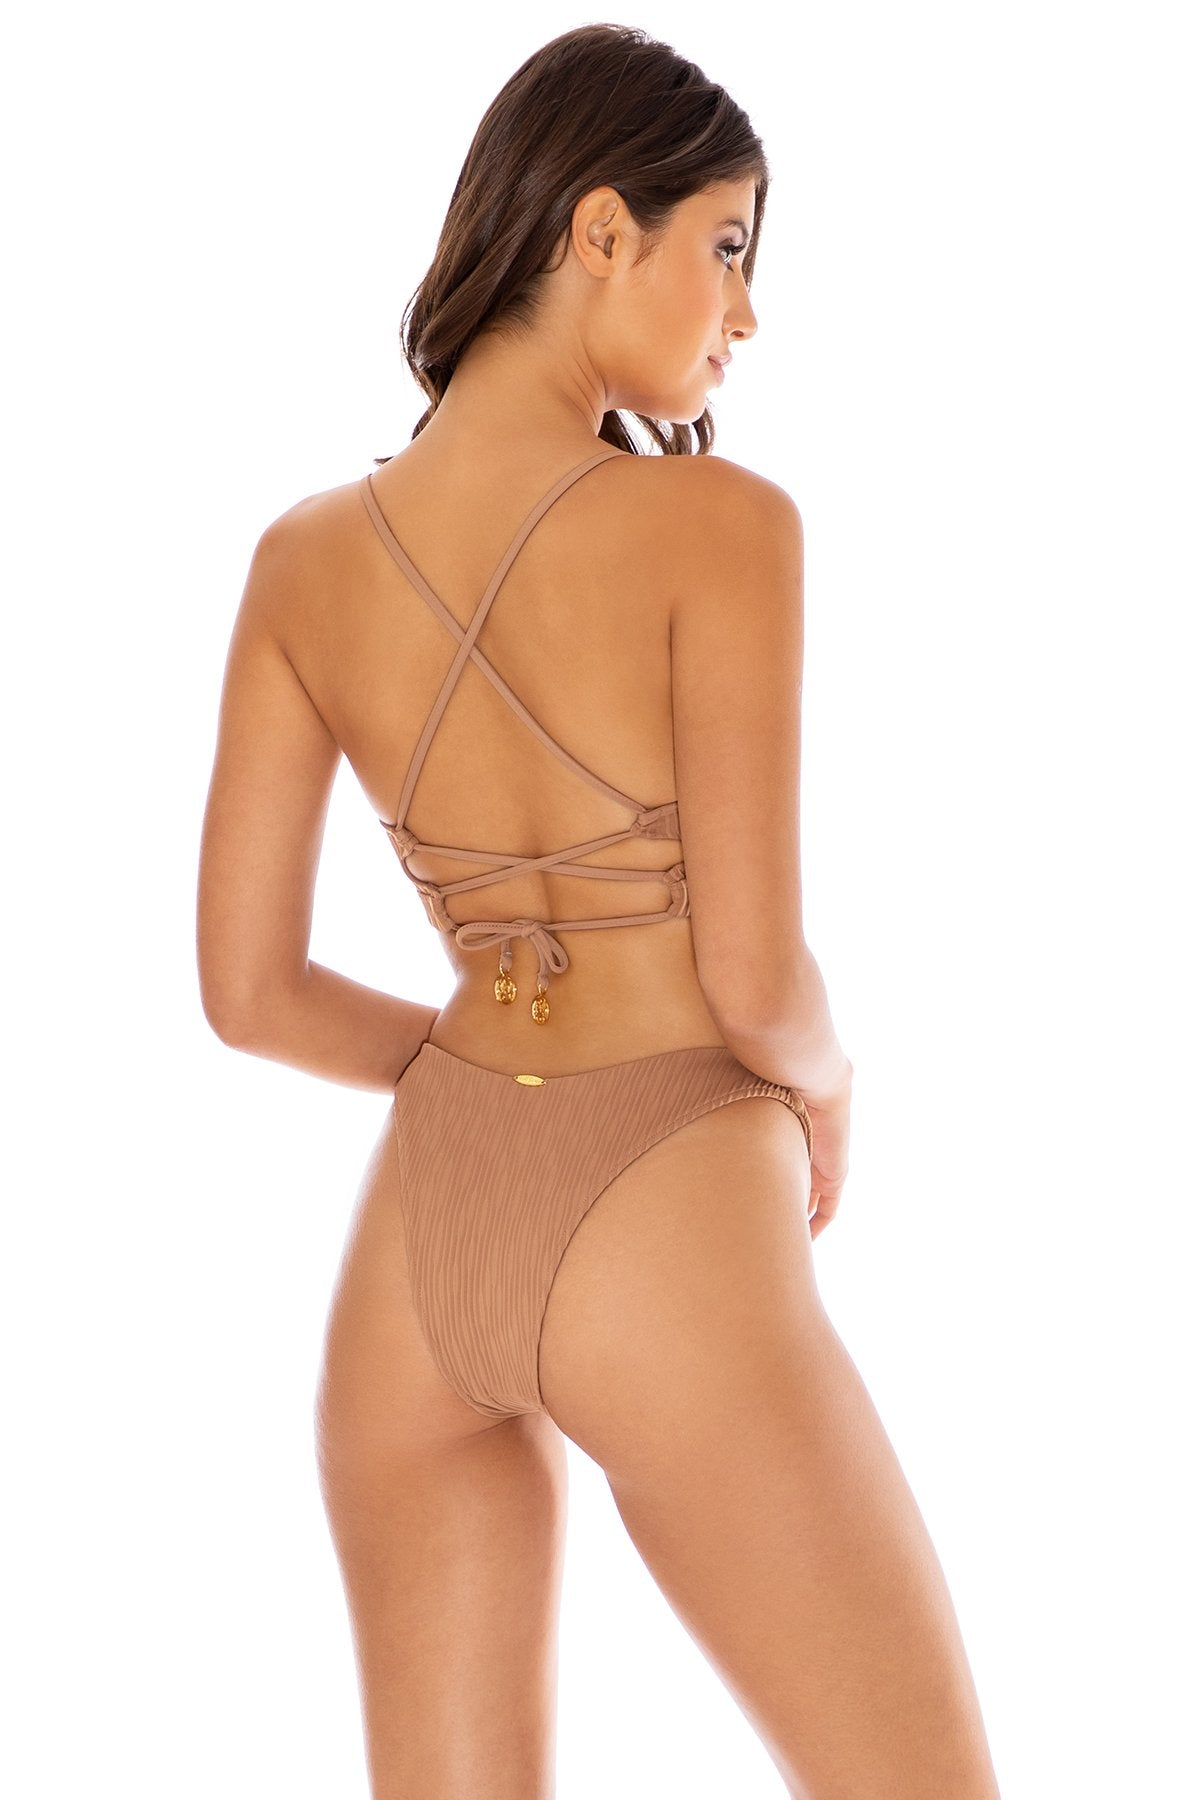 RIVER DANCE - Underwire Top & High Leg Bottom • Coconut